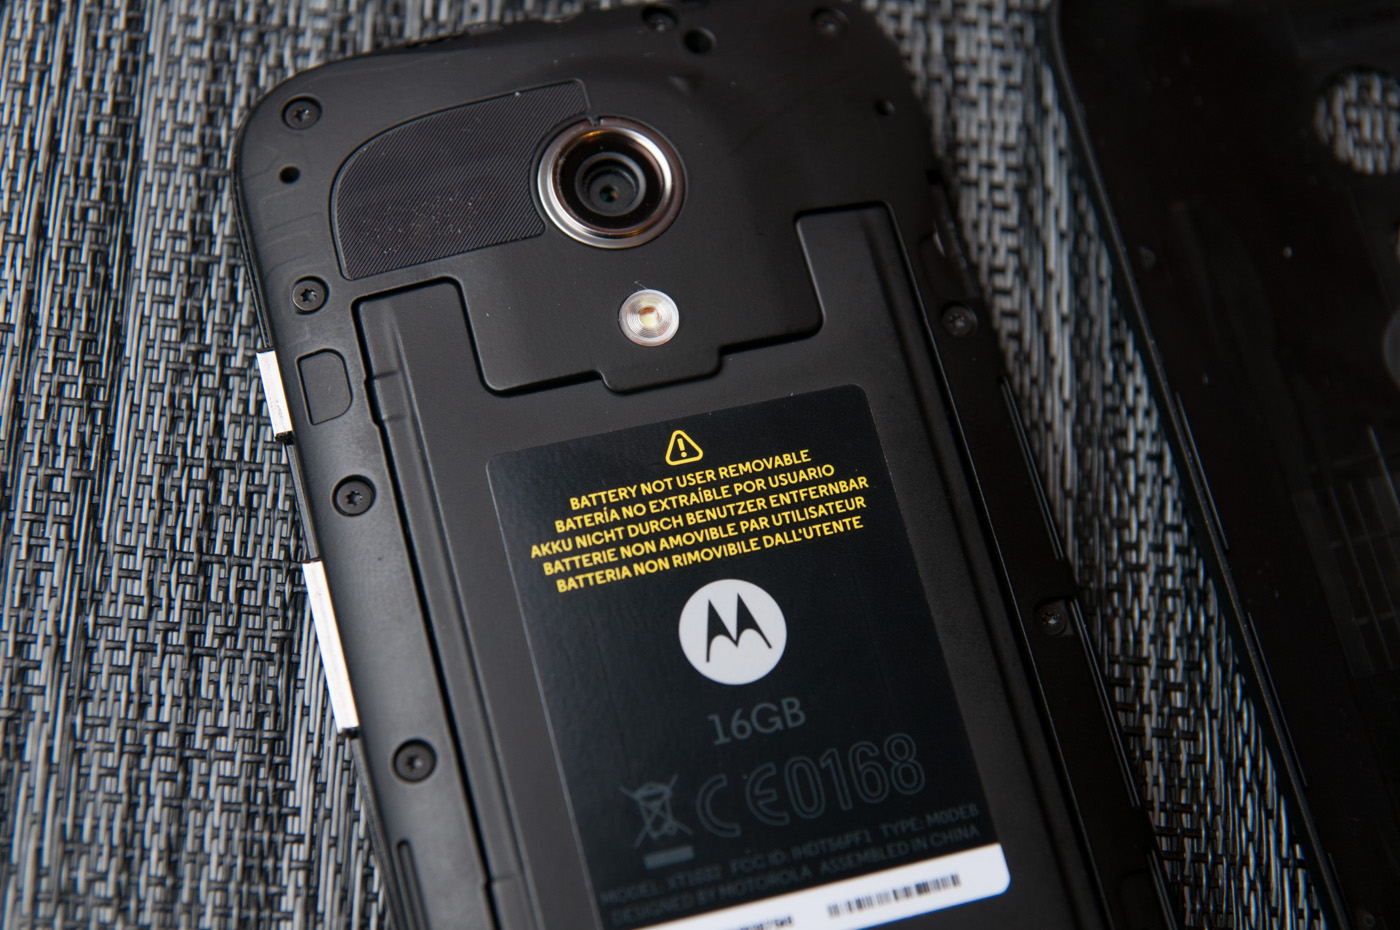 Motorola Moto G4 Plus Battery